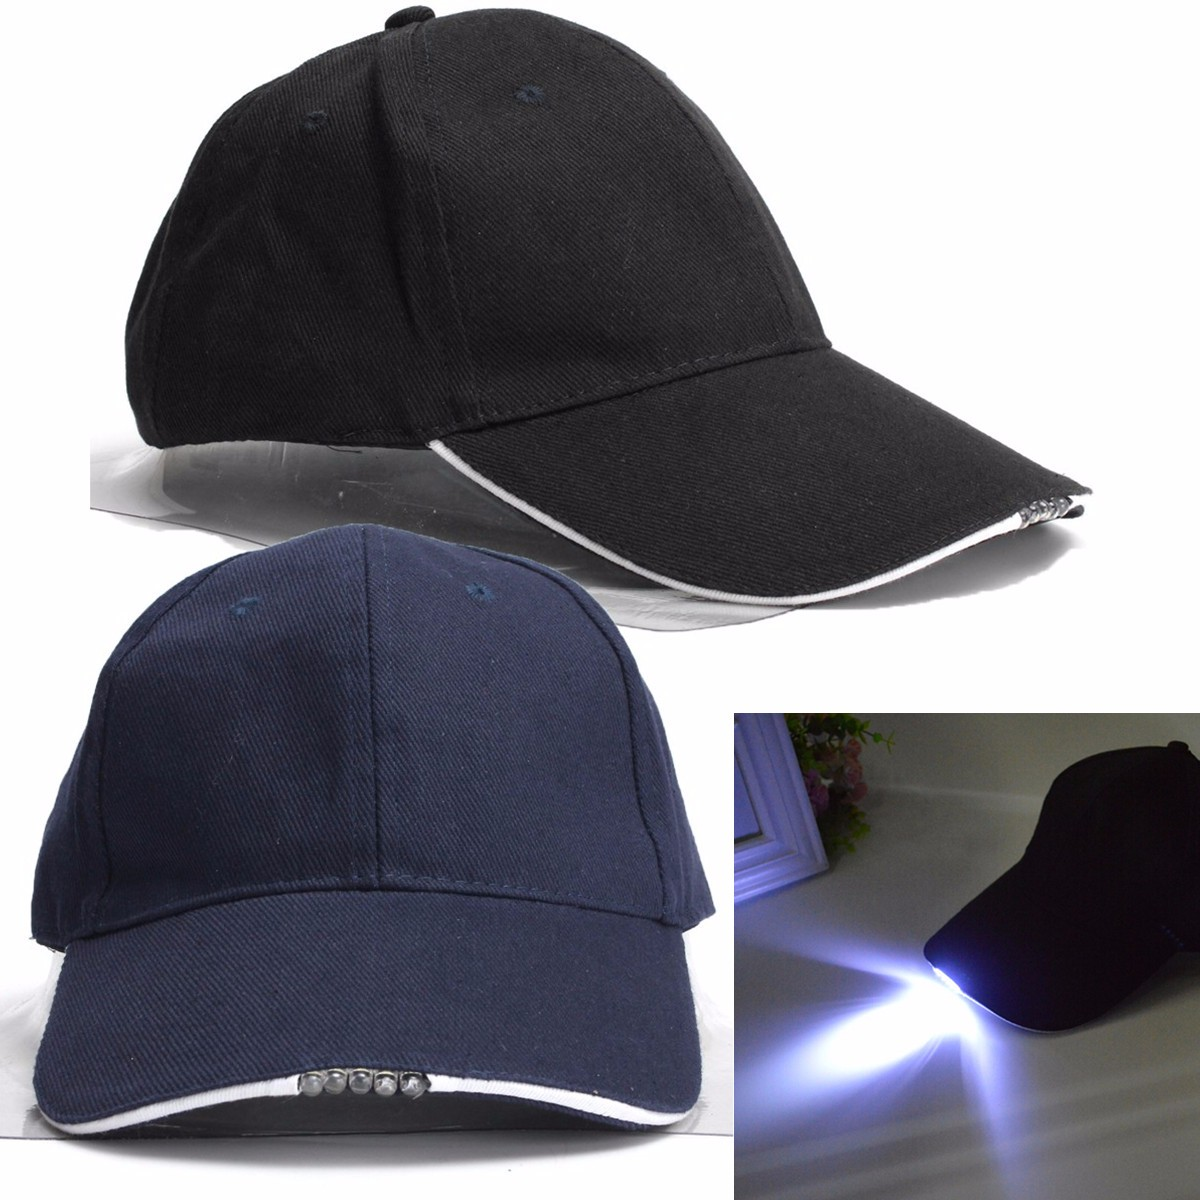 Adjustable Bicycle 5 LED Headlamp Cap Battery Powered Hat With LED Head Light Flashlight For Fishing Jogging Baseball Cap adjustable baseball hat fashion sunshade cap with tesla logo black sport hat for tesla model s x universal cap for men women